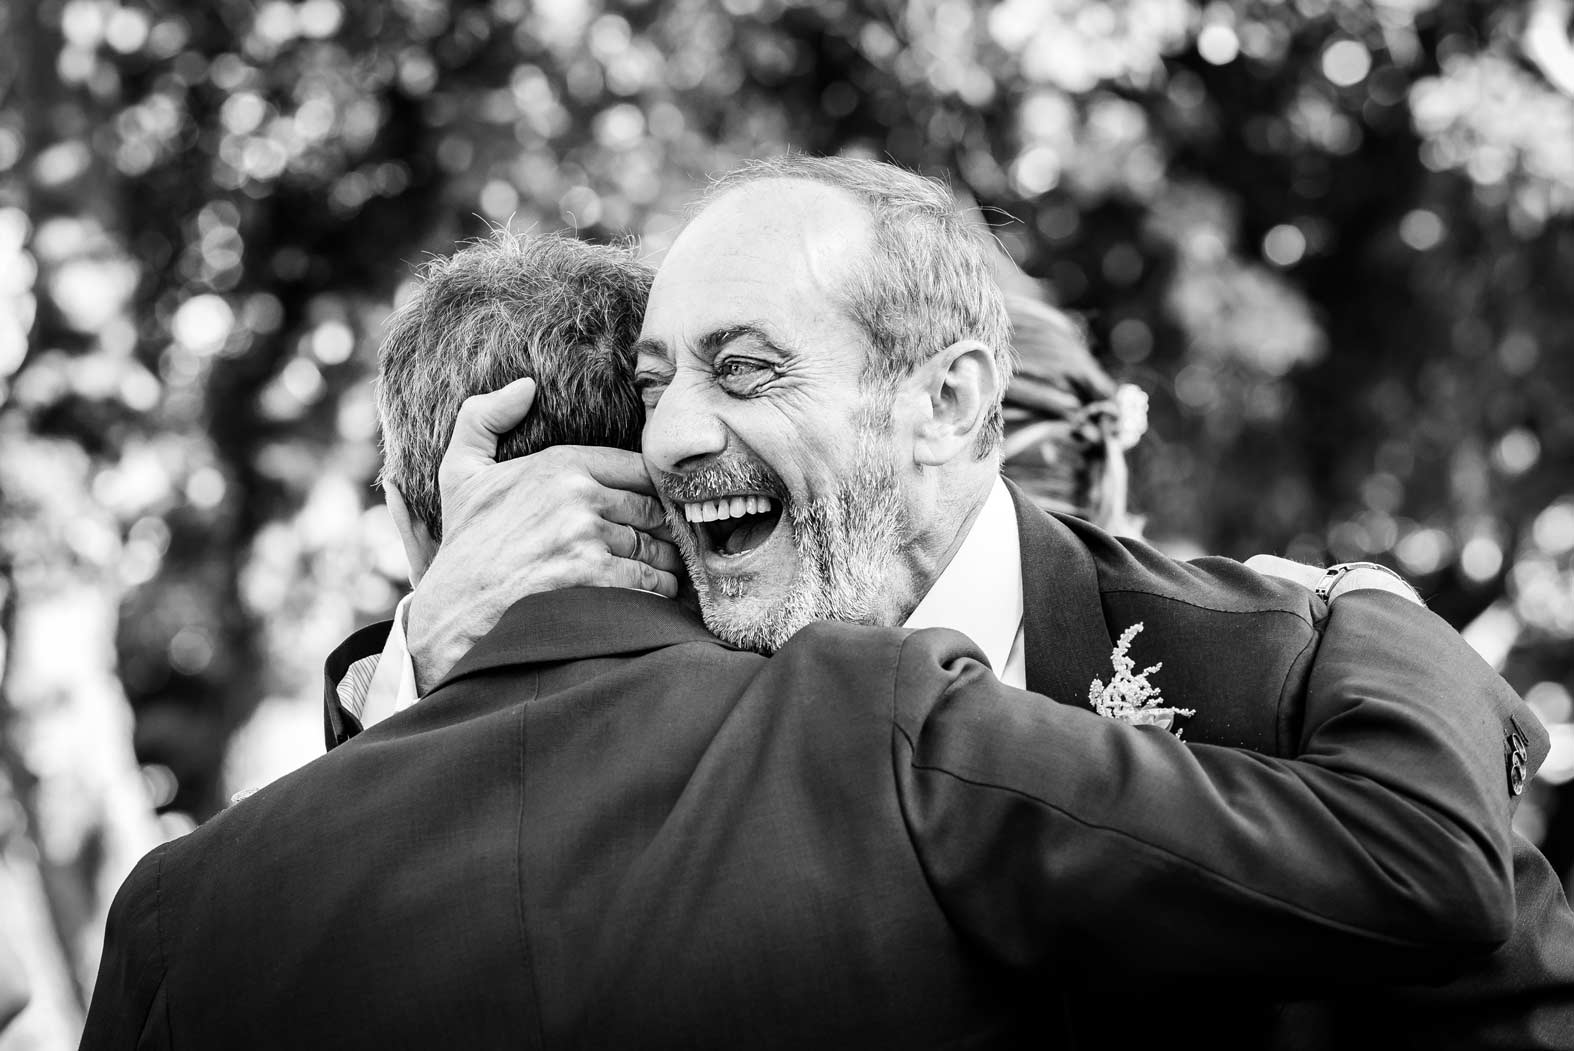 Wedding-Photographer-in-Italy-Reportage-Wedding-Photography-Reception